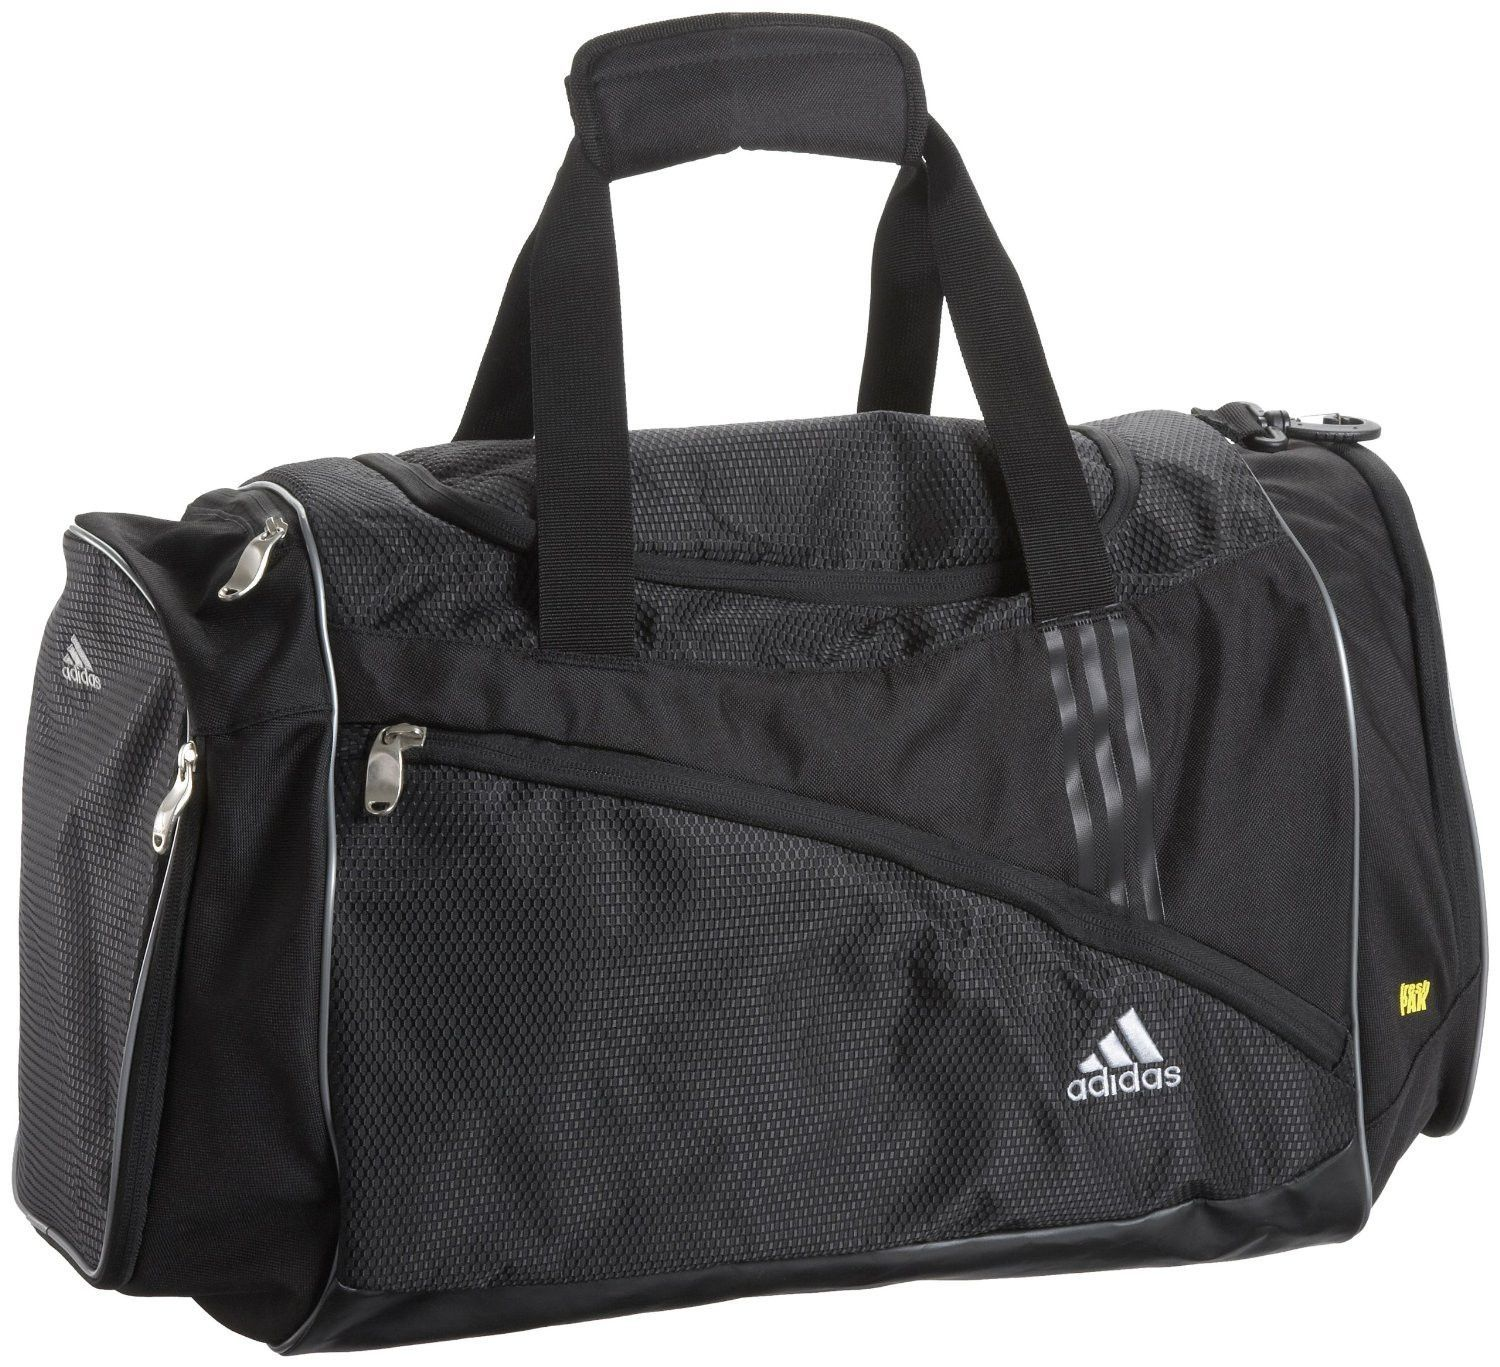 This adidas Scorch Team Duffel Bag is made to carry everything you need for those big tournaments and games. It has a large main compartment with a sturdy zip, a separate FreshPAK wet/dry compartment